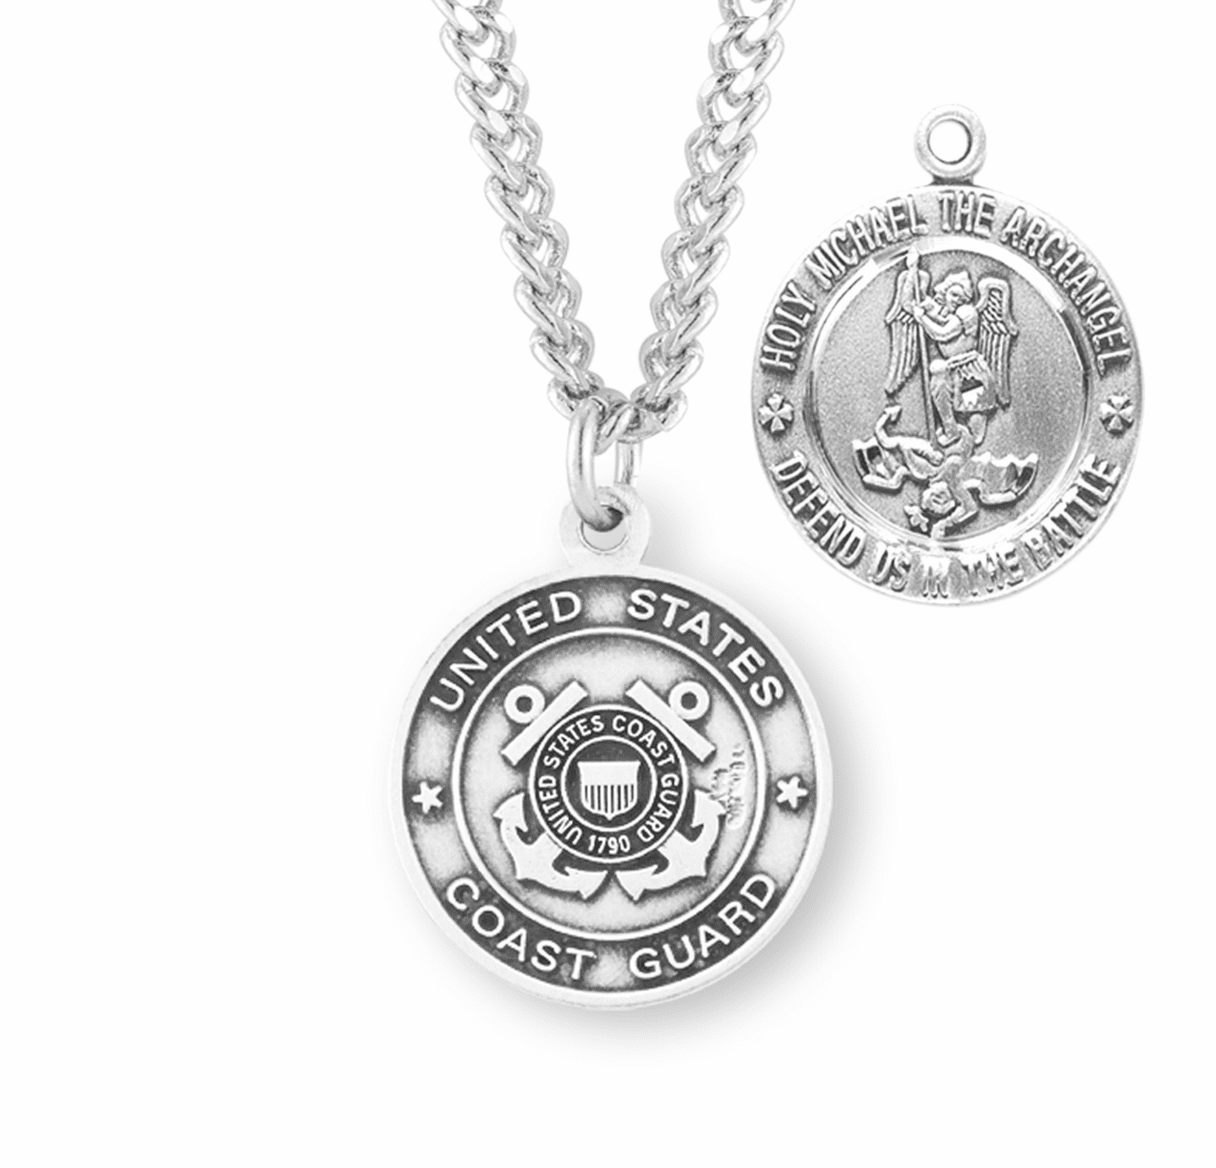 Military St Michael Coast Guard Sterling Silver Medal Necklace by HMH Religious